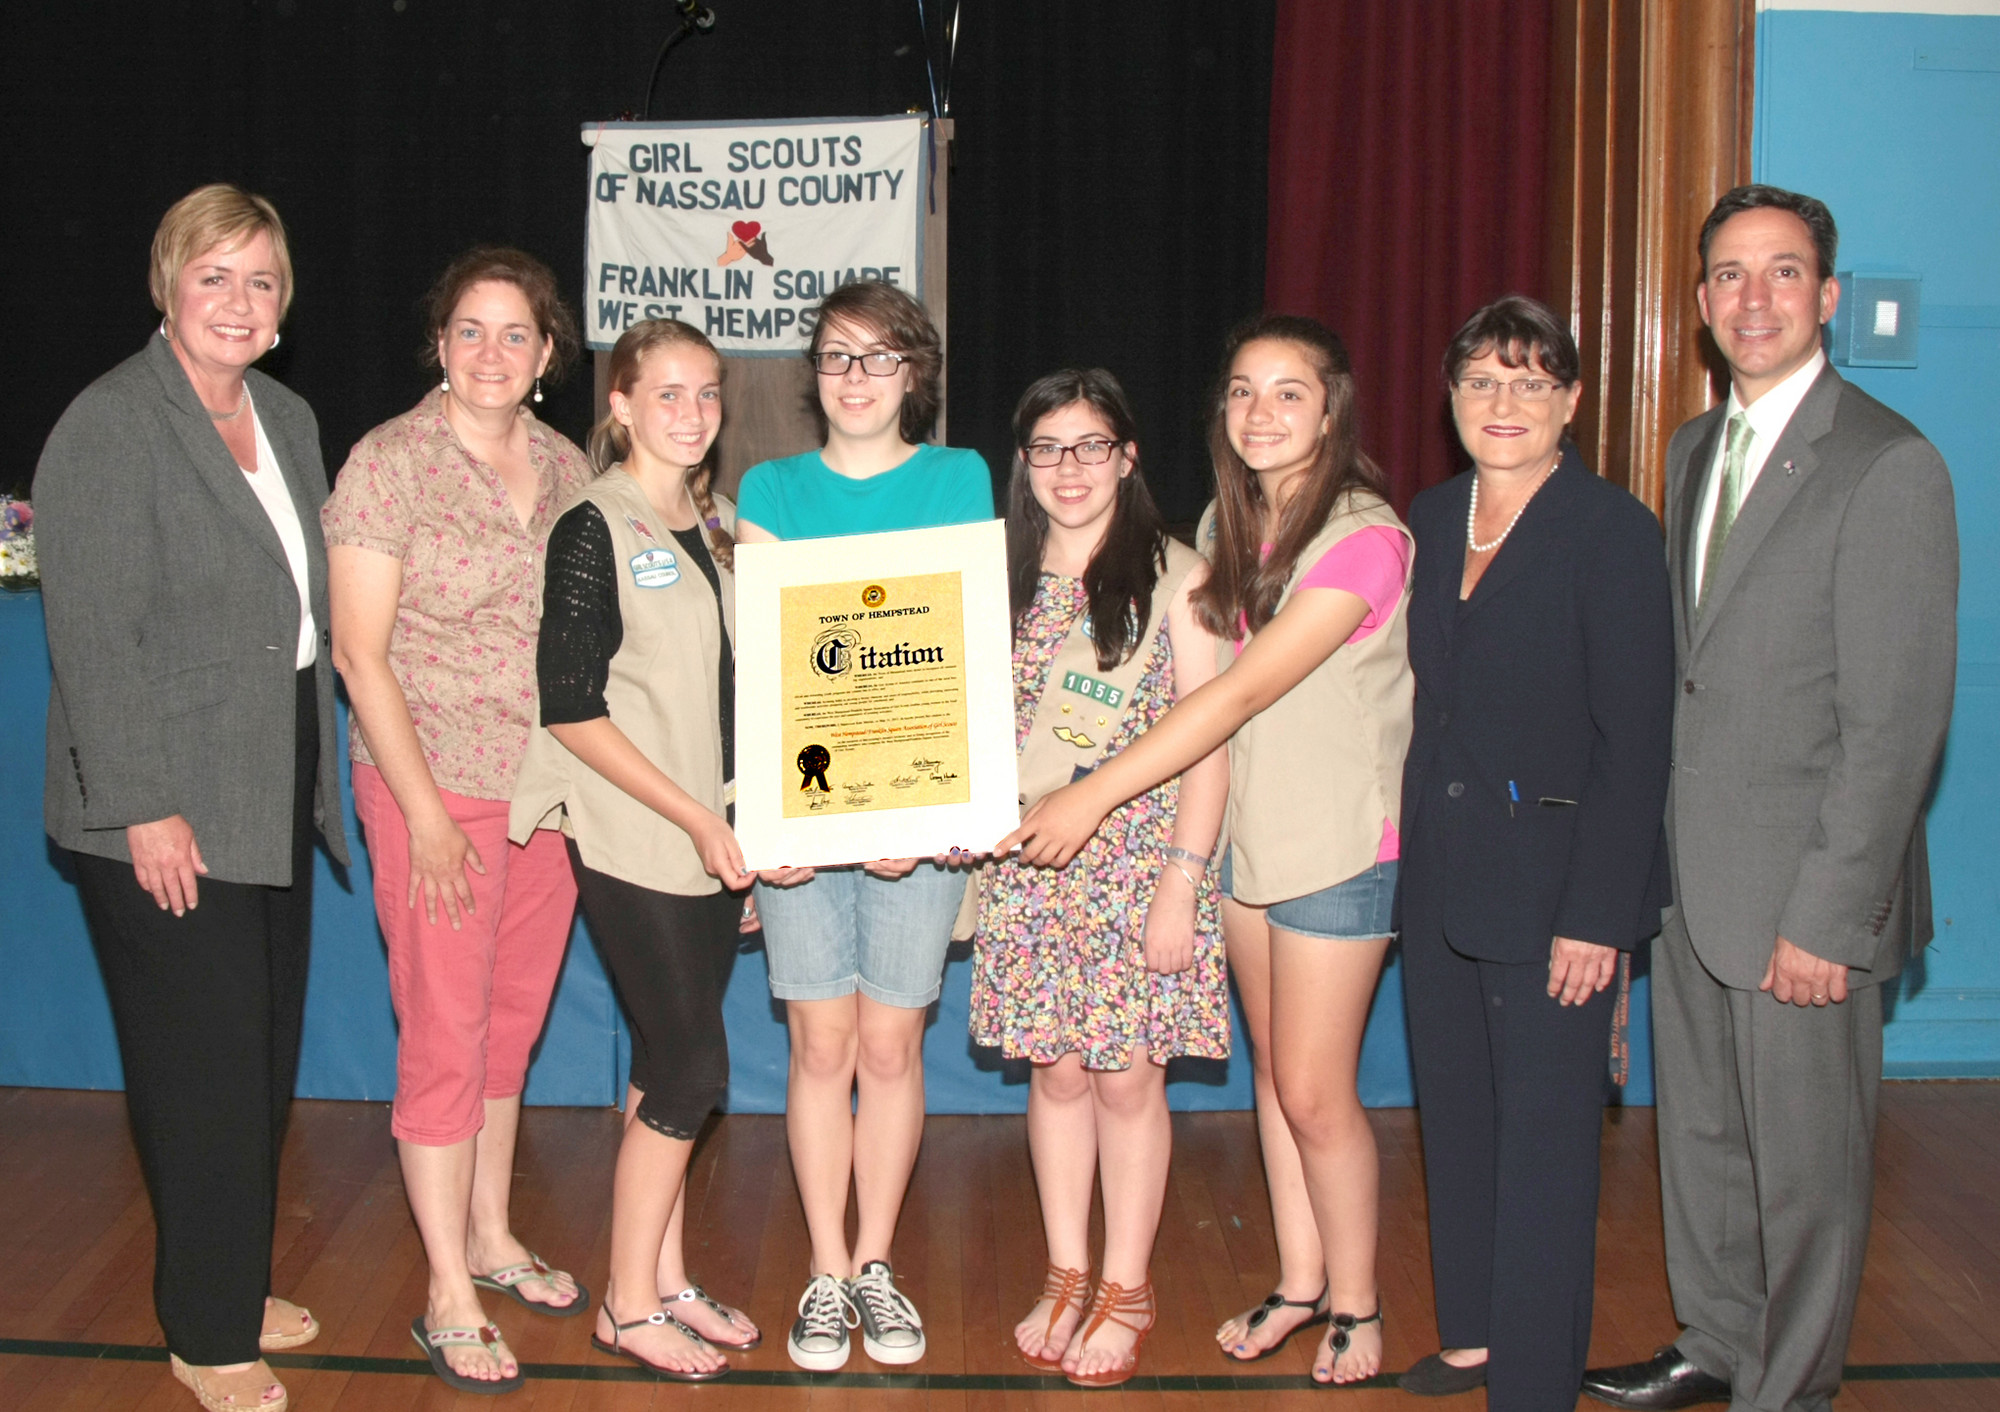 Troop 1055 received a silver award on May 31. Troop leader Ronnie Espey and fellow members were honored by New York State Senator Jack Martins, right, Nassau County Clerk Maureen O'Connell and Town Supervisor Kate Murray, left.